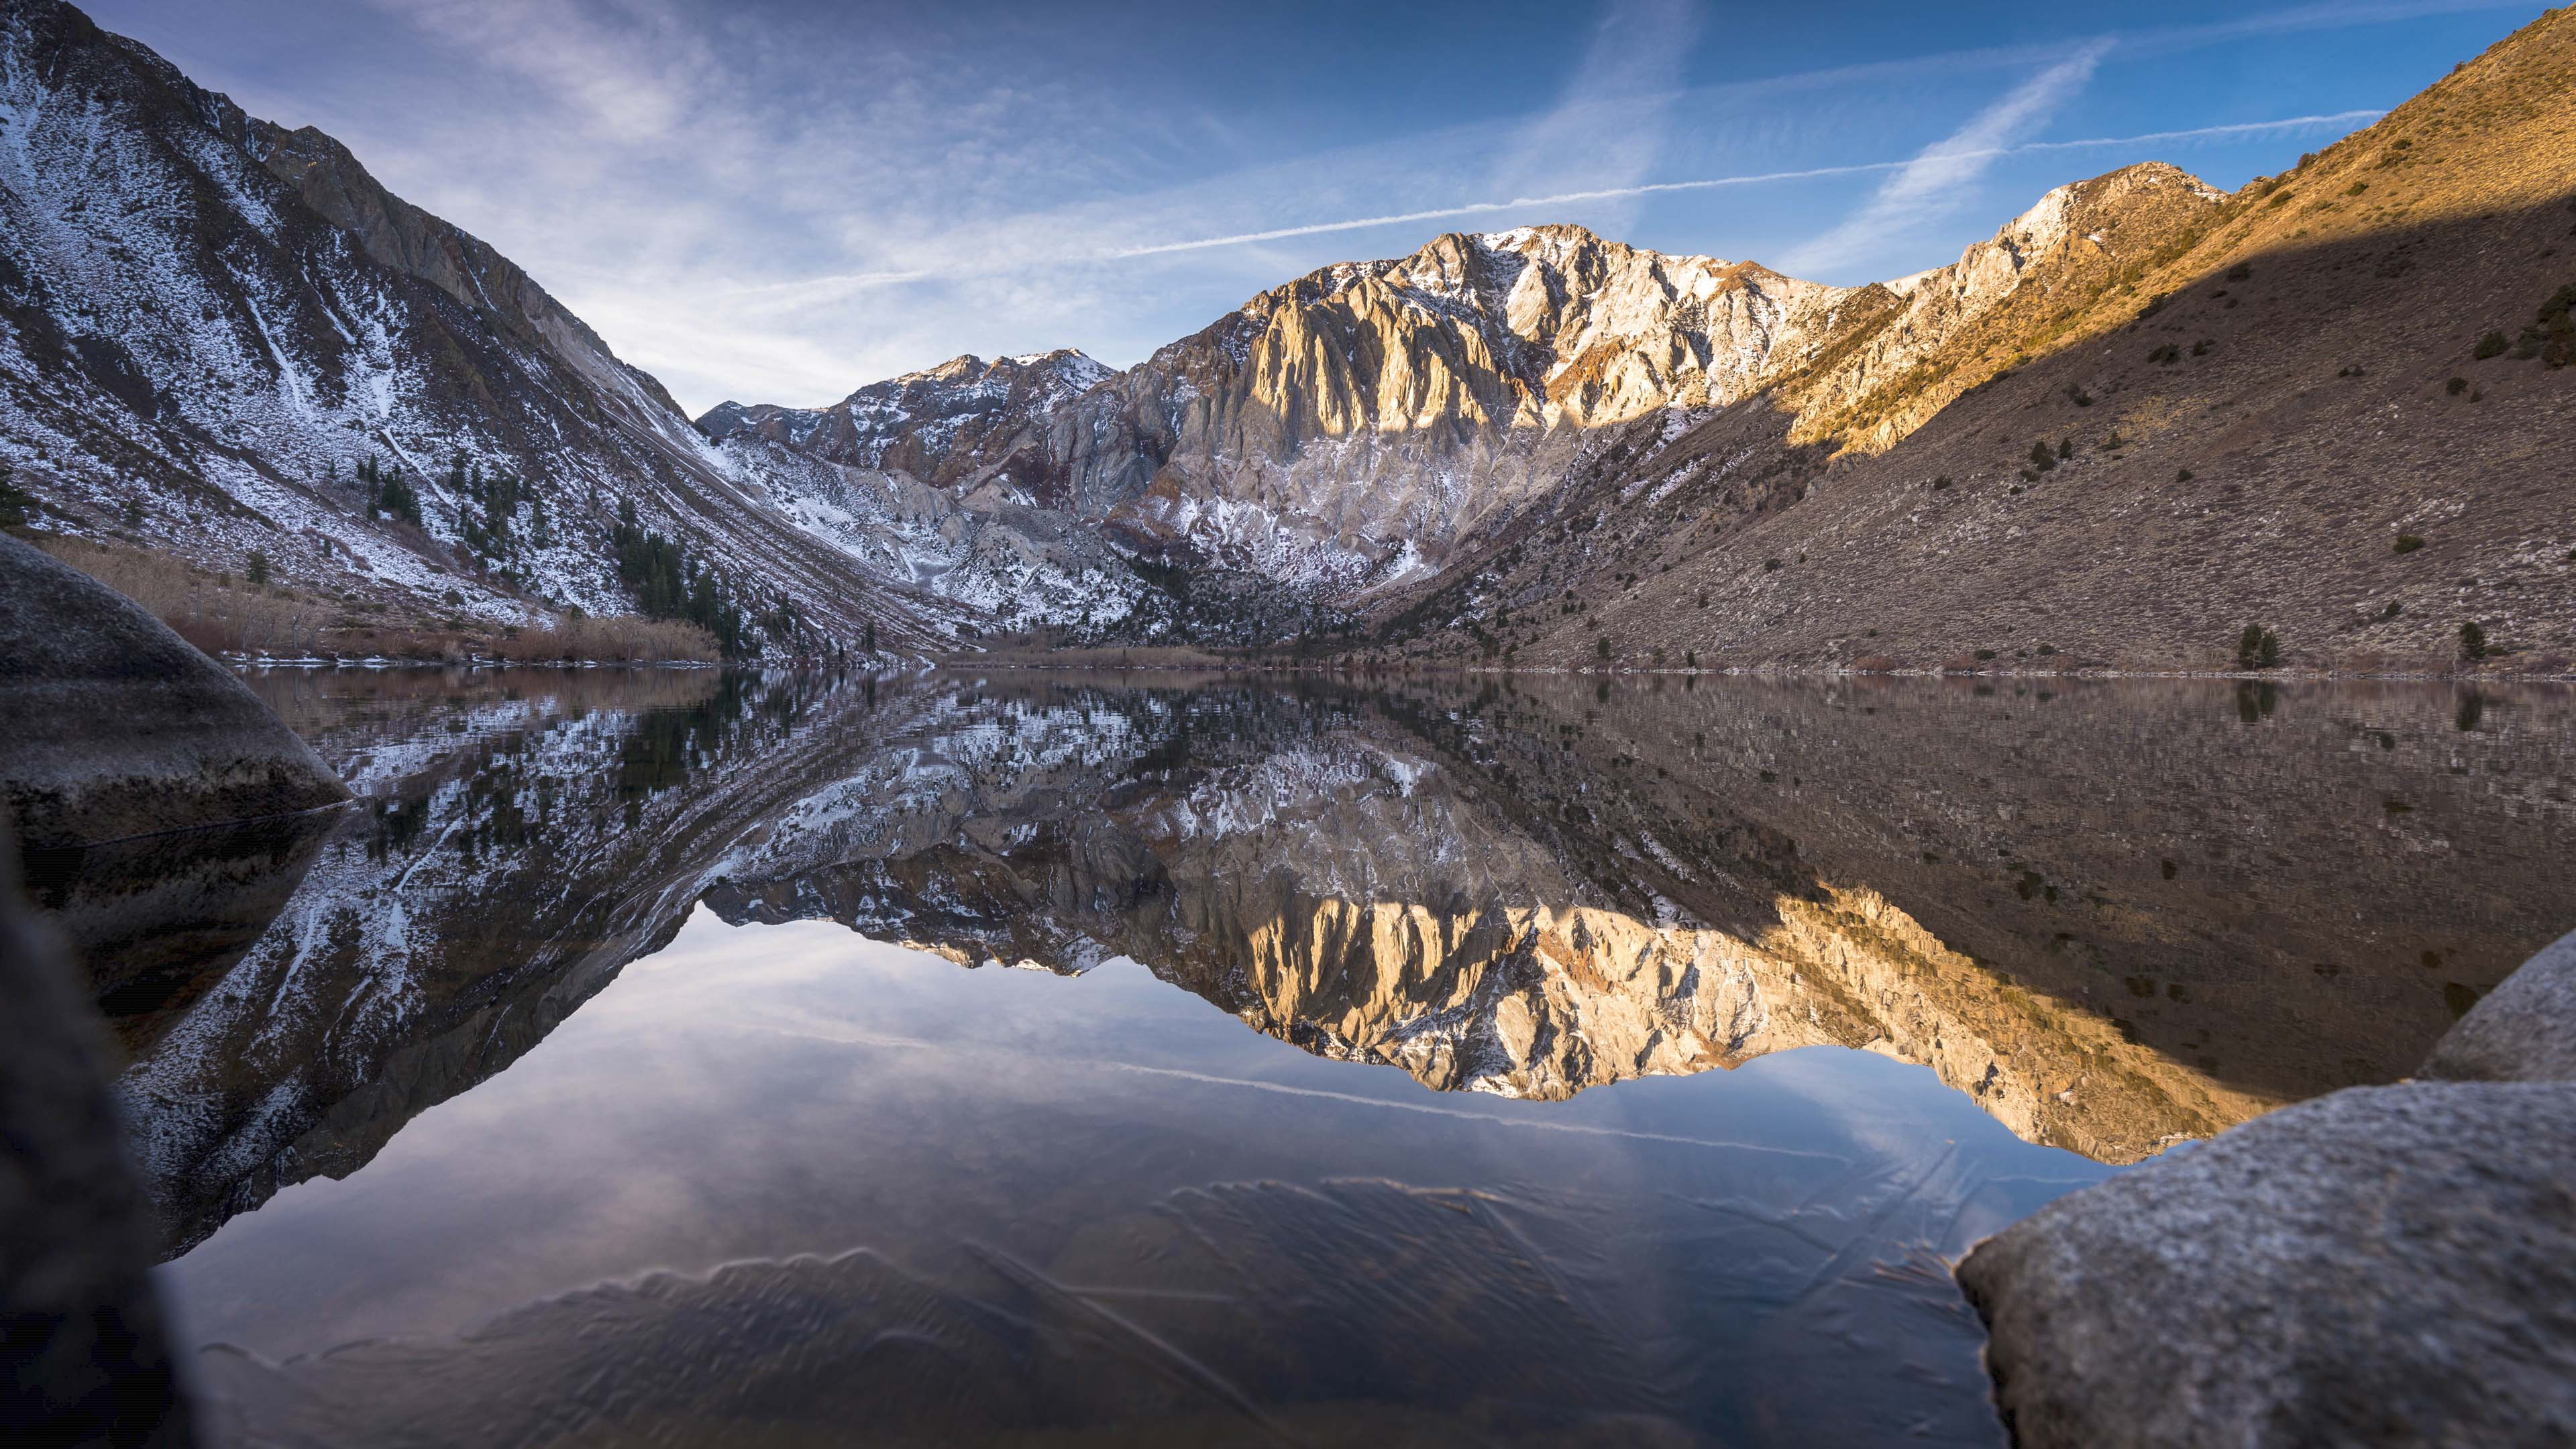 4K View over the Convict Lake Wallpapers HD Wallpapers 3840x2160